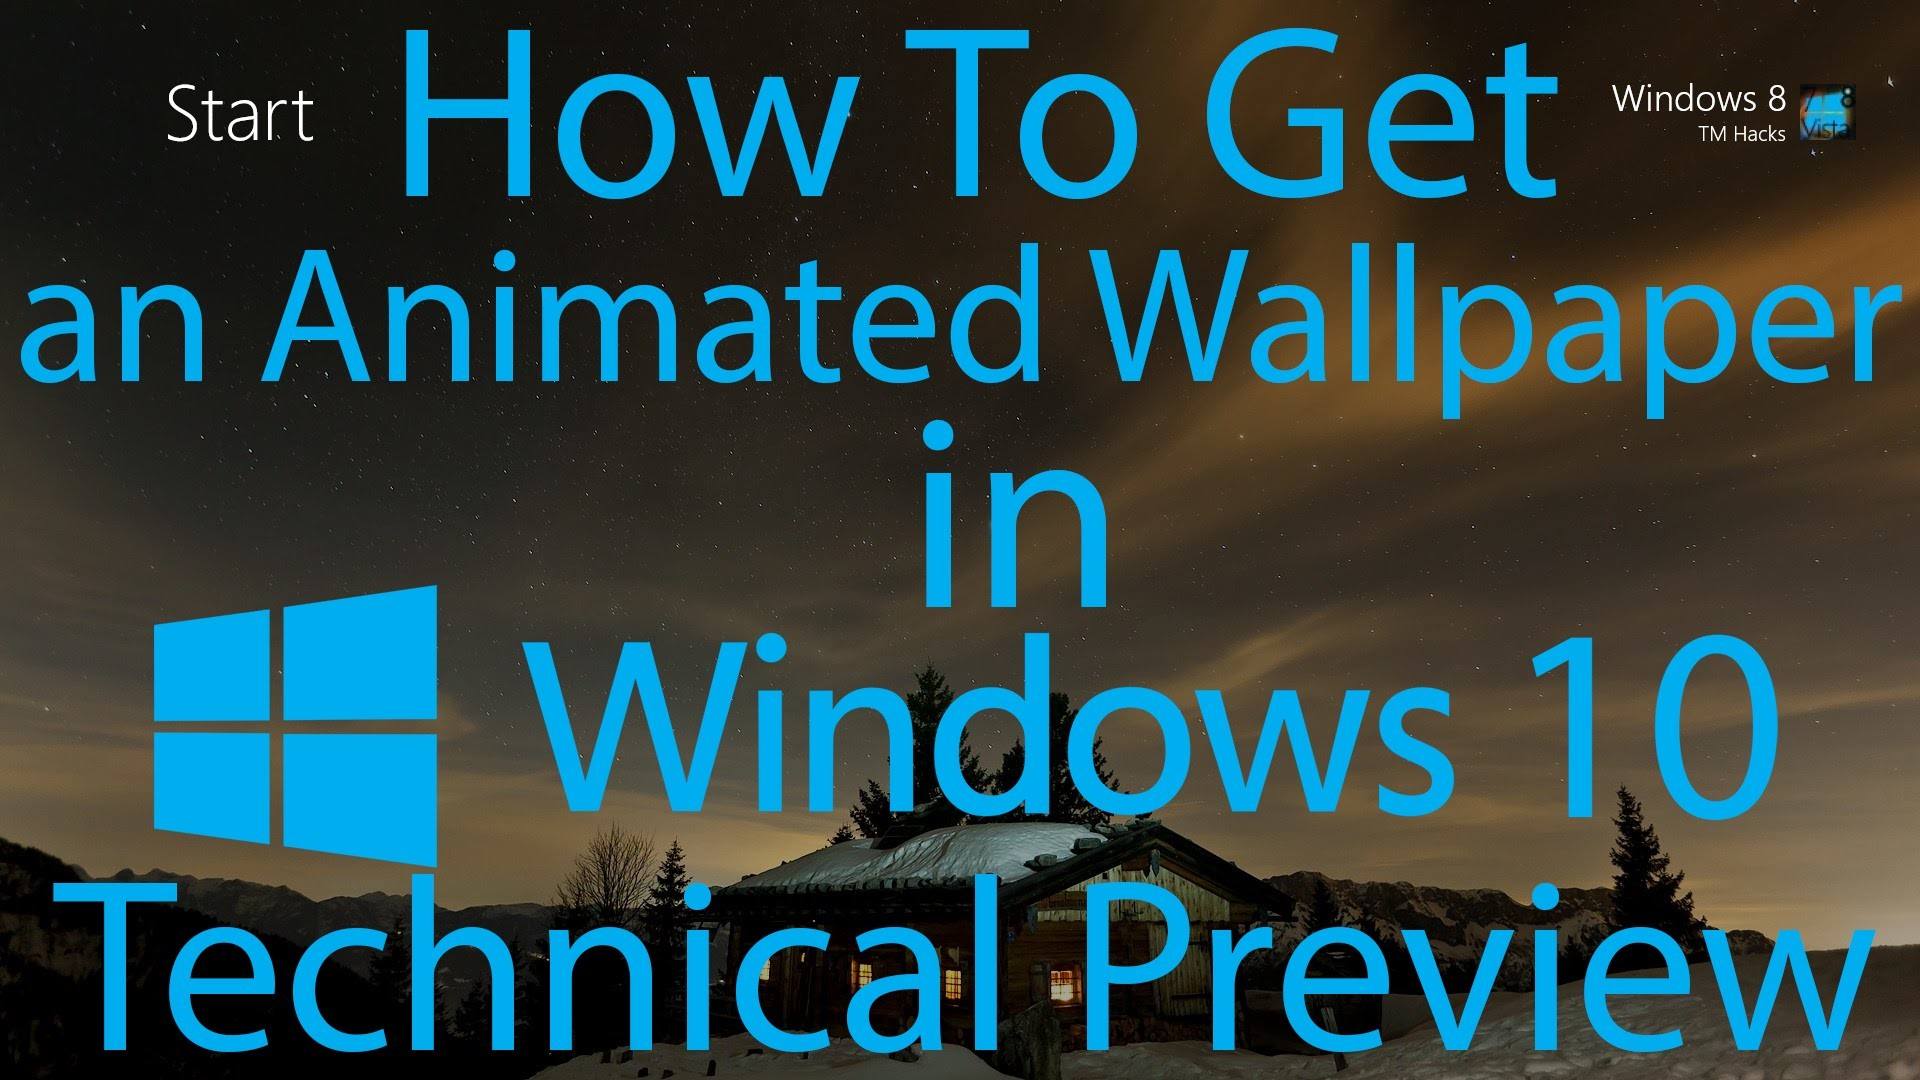 1920x1080 How To Have an Animated Wallpaper in Windows 10 Technical Preview.